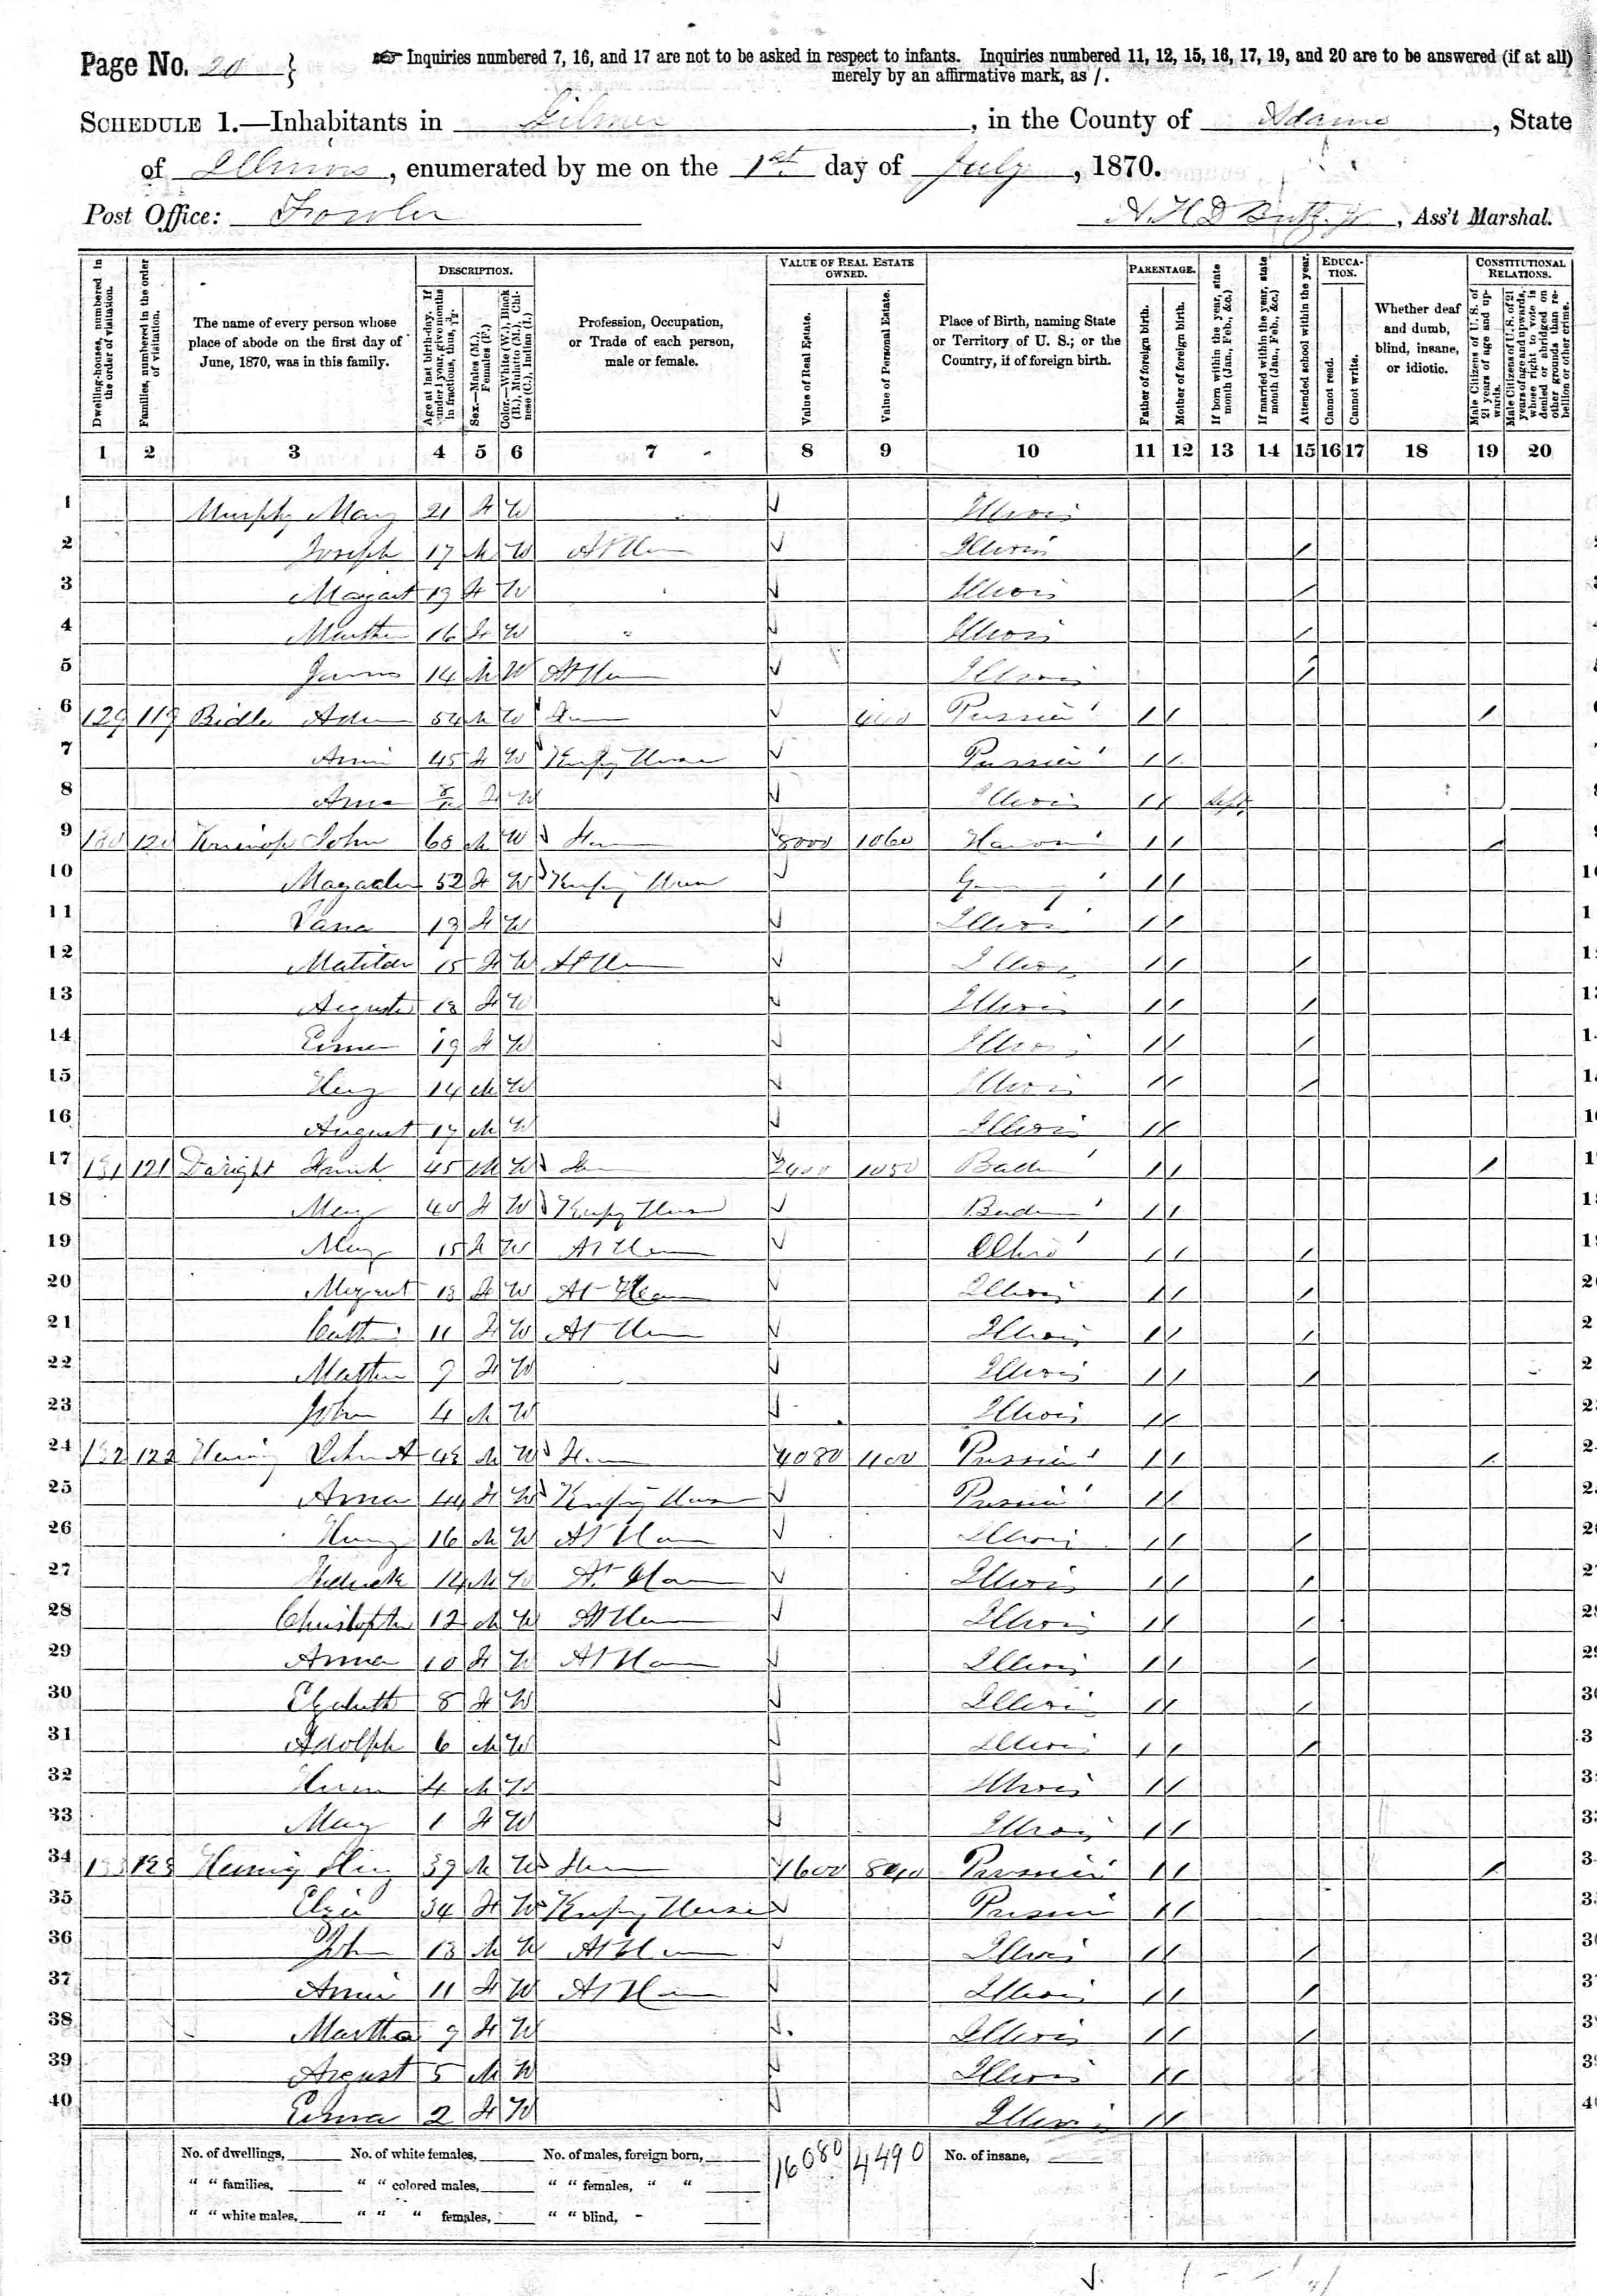 Illinois adams county fowler - 1870 U S Census Of Adams County Illinois Gilmer Township Taken On 1 July 1870 Roll 186 Book 1 Page 165b Lines 24 33 Dwelling 132 Family 122